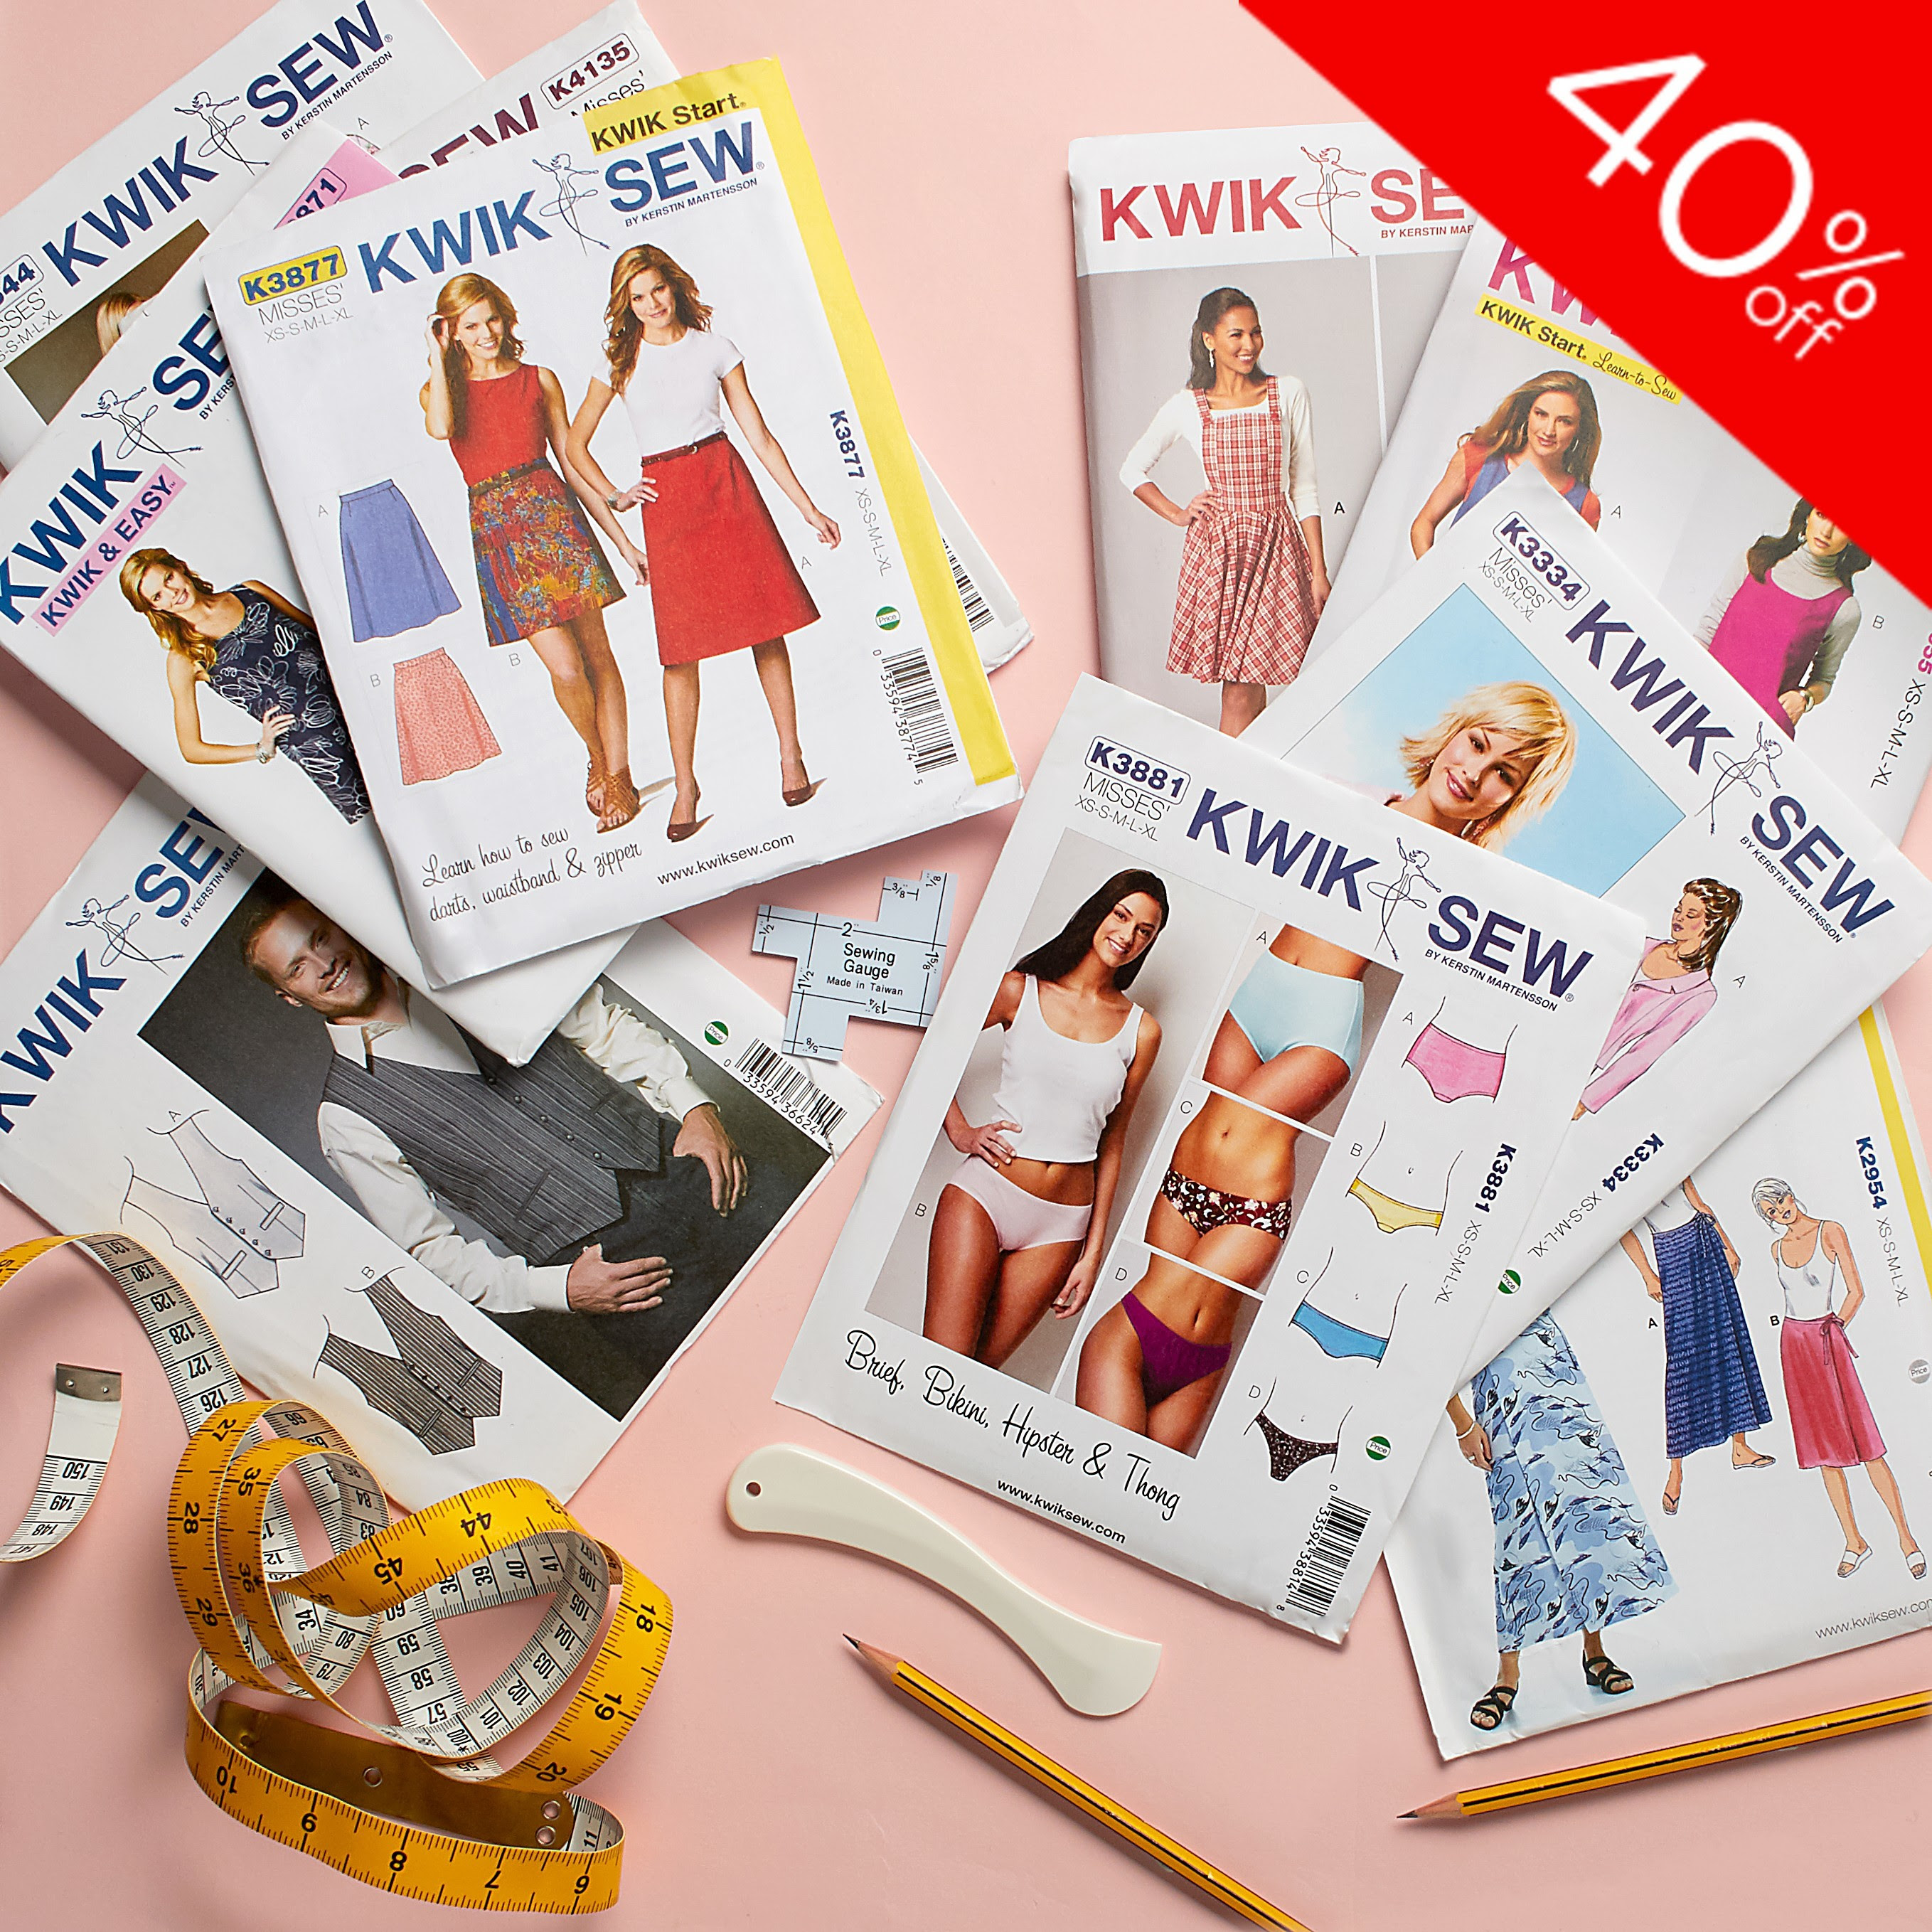 Save 40% off all Kwik Sew sewing patterns